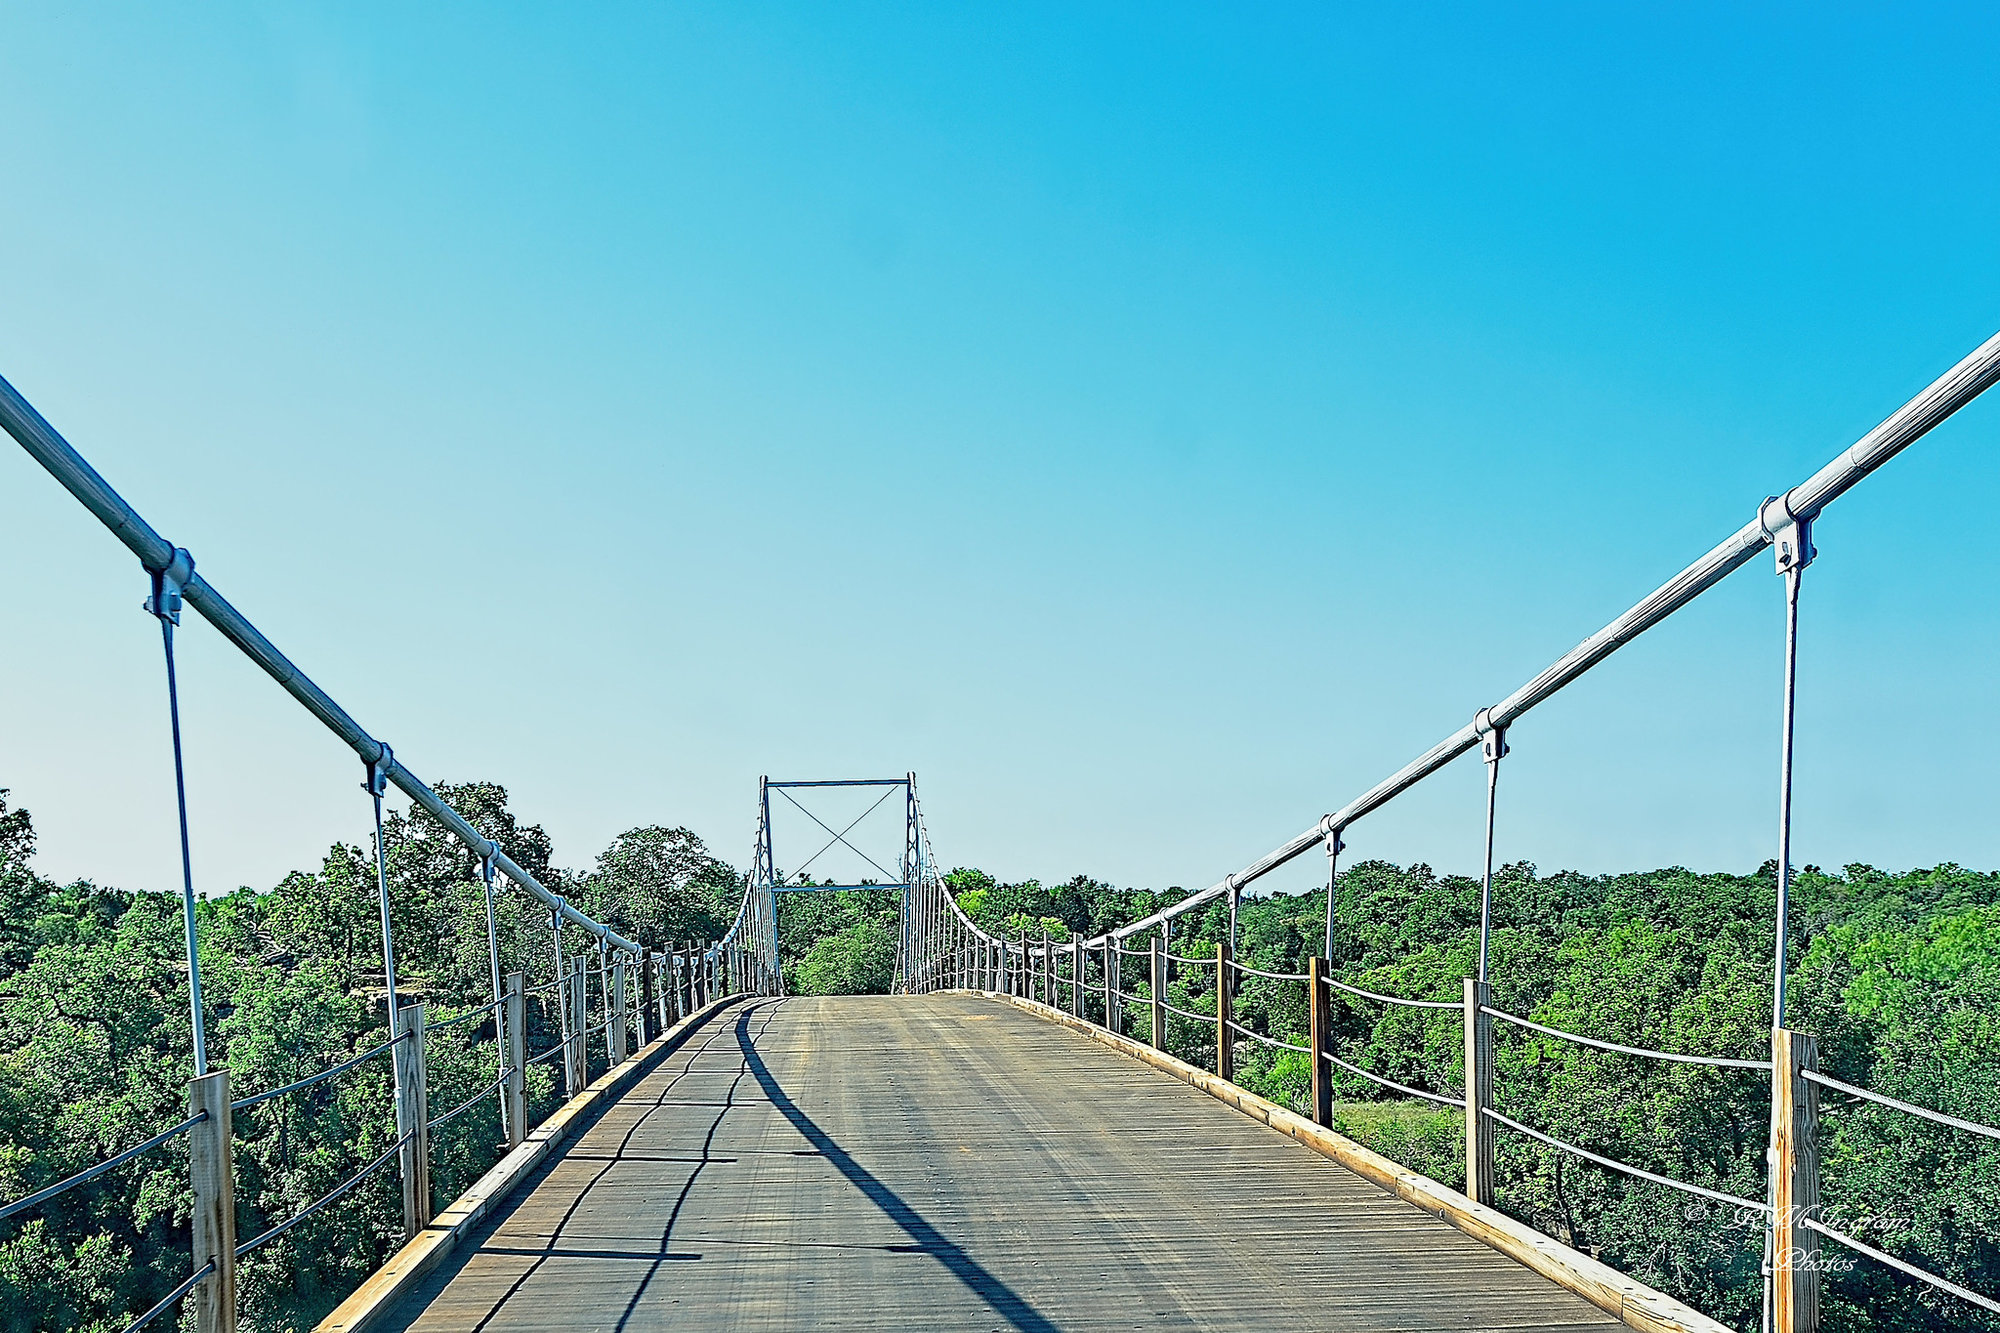 Photo of the Regency Bridge in Mills County, Texas